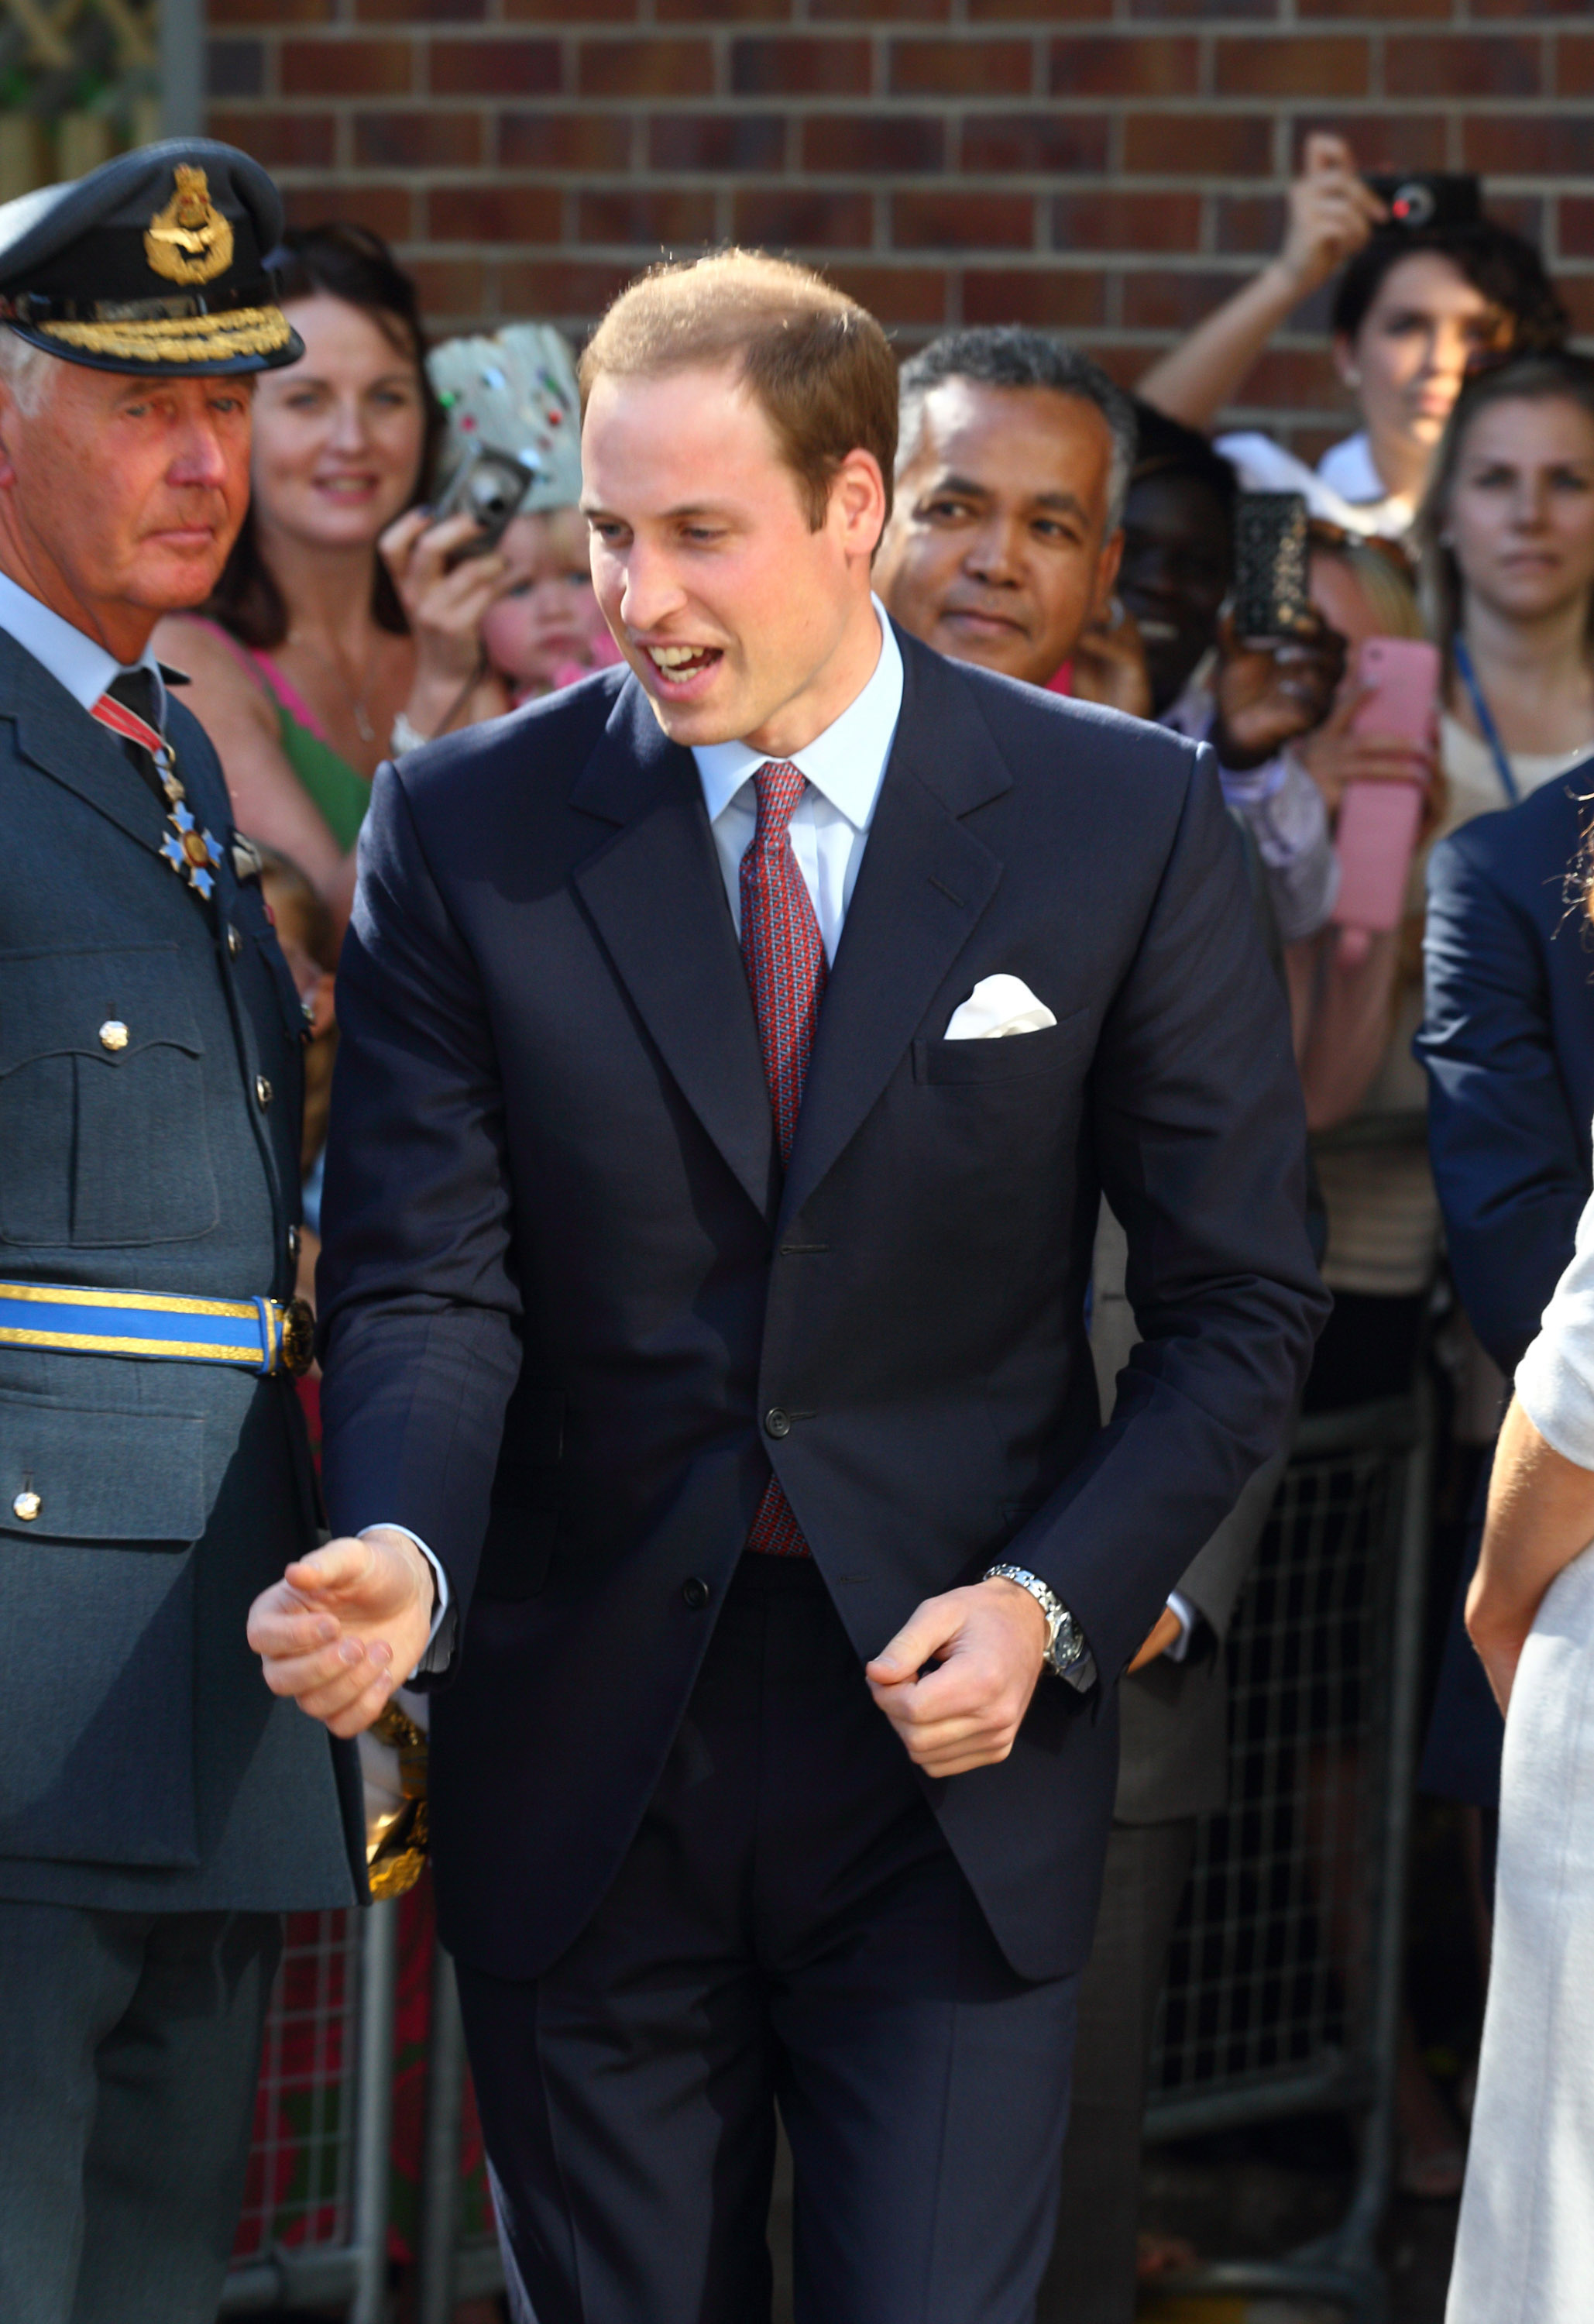 Prince William in a navy blue suit.